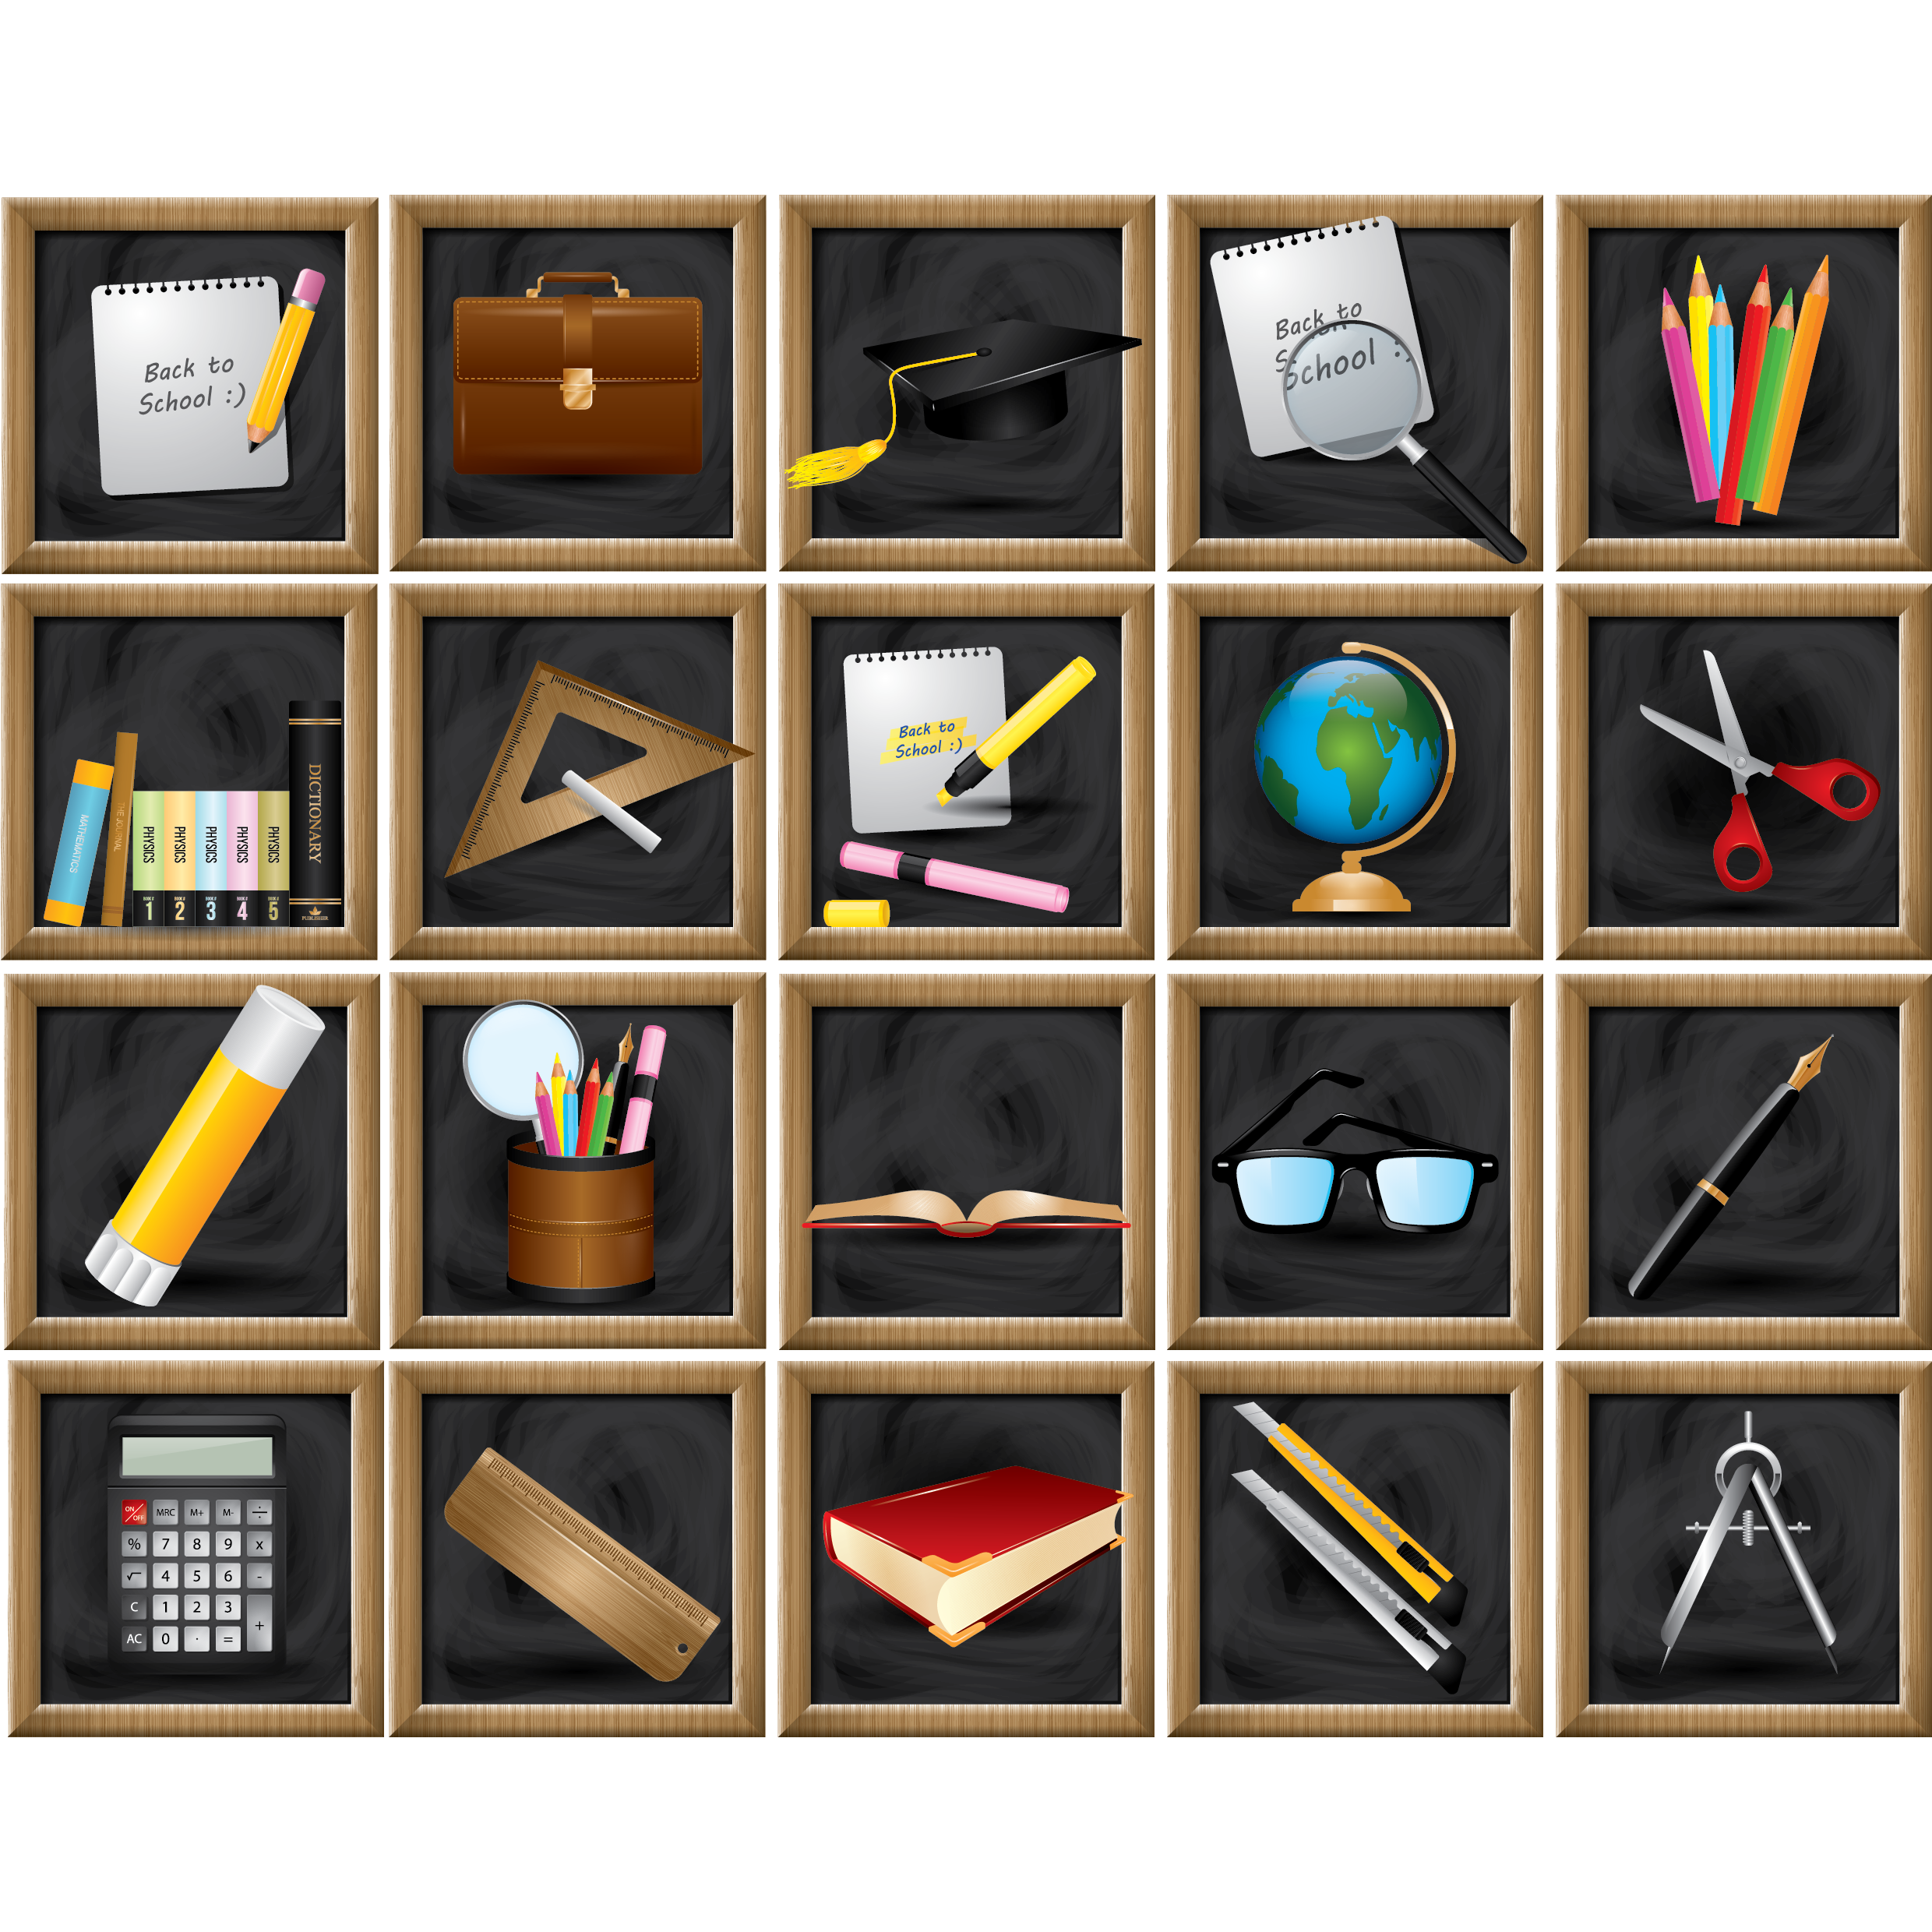 School supplies on a chalkboard.